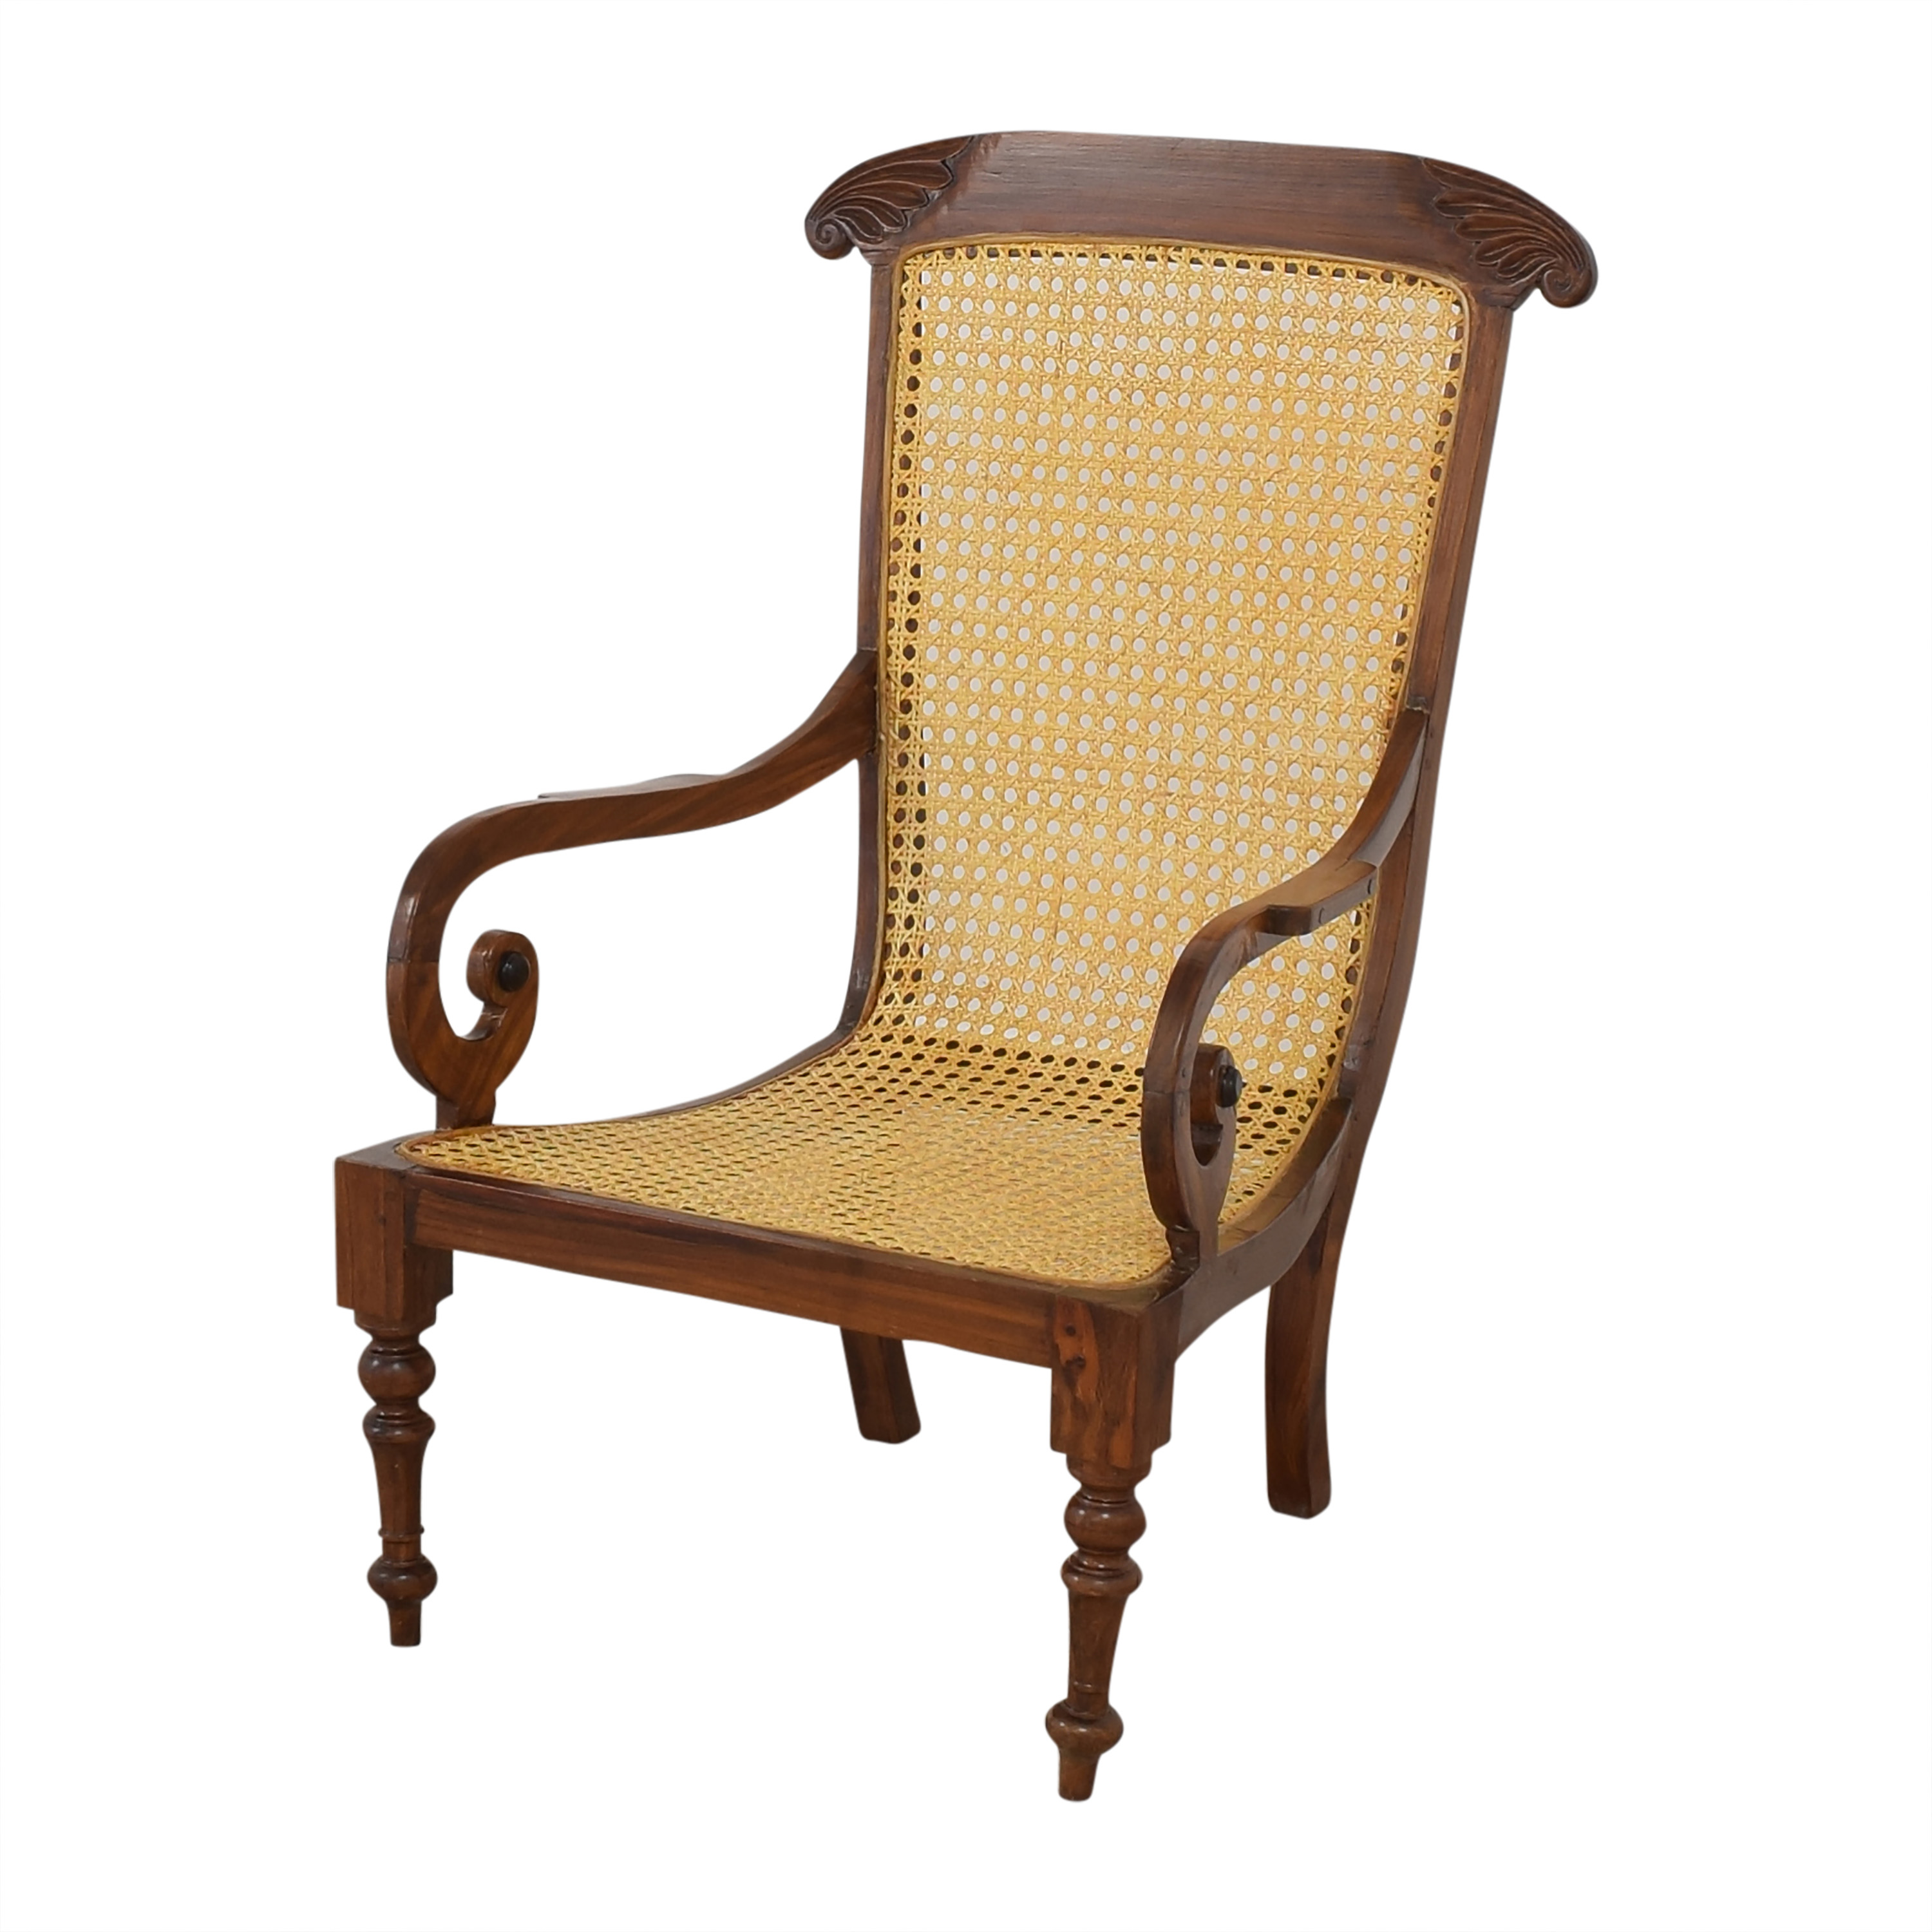 Vintage Carved Colonial-Style Chairs nyc